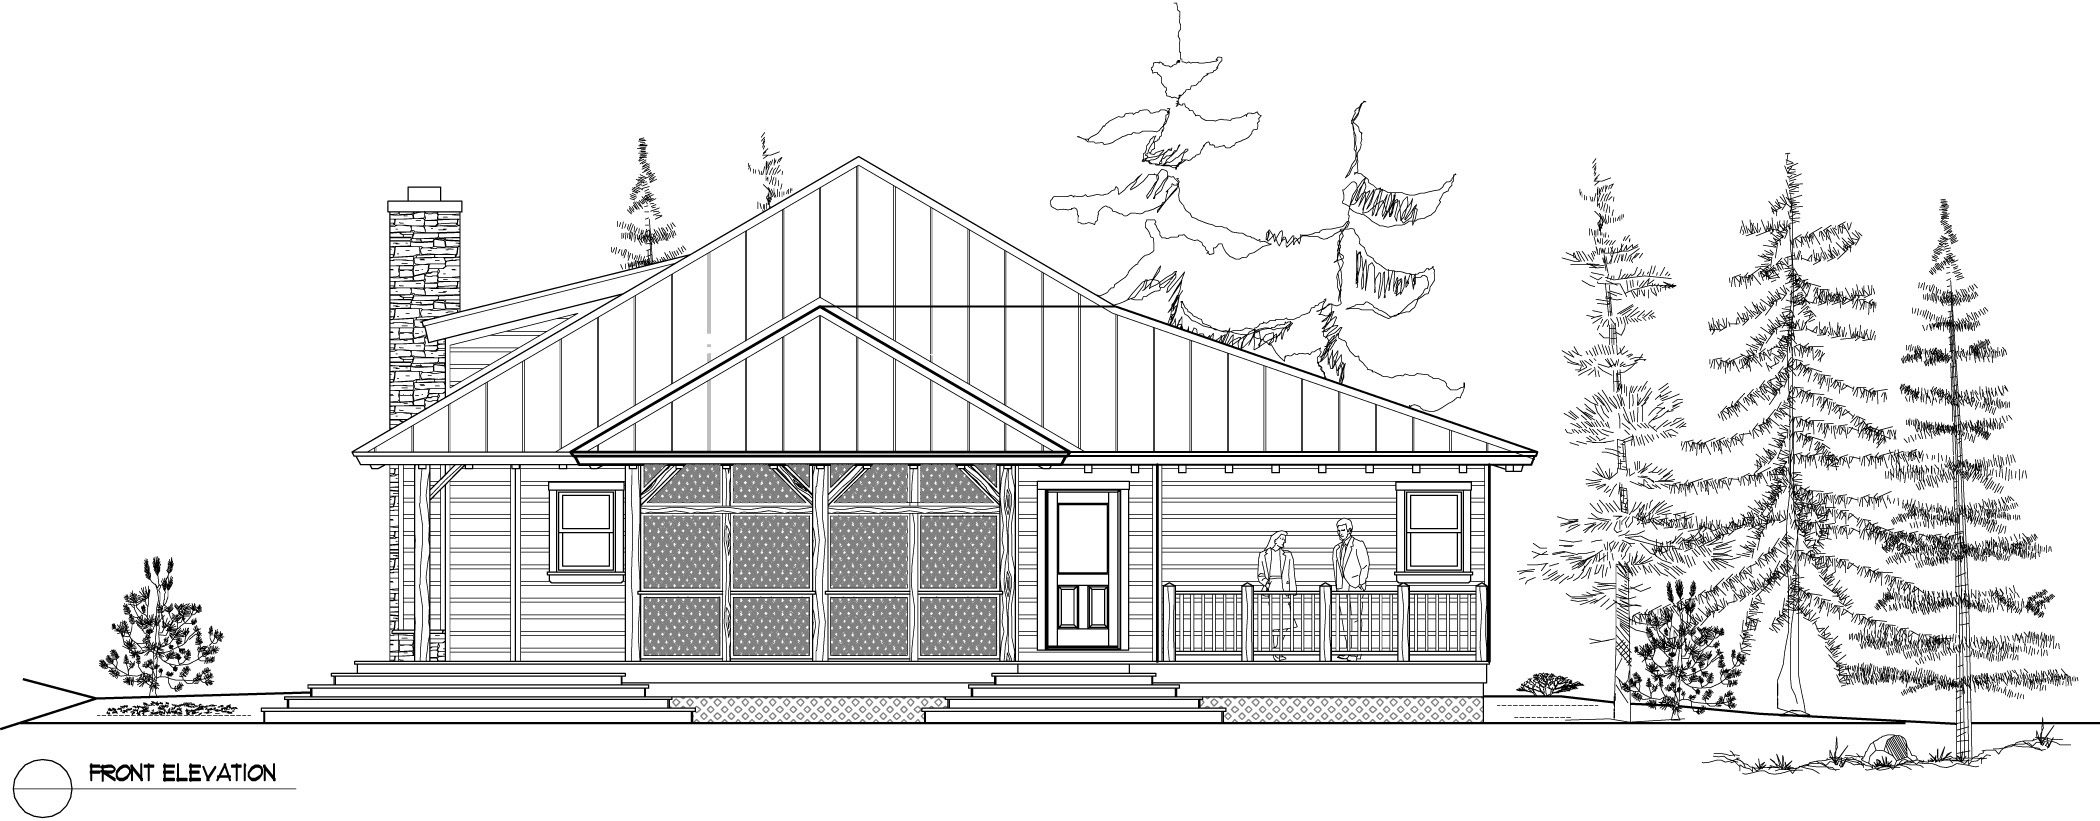 Normerica Timber Frame, House Plan, The Baril 3514, Front Elevation